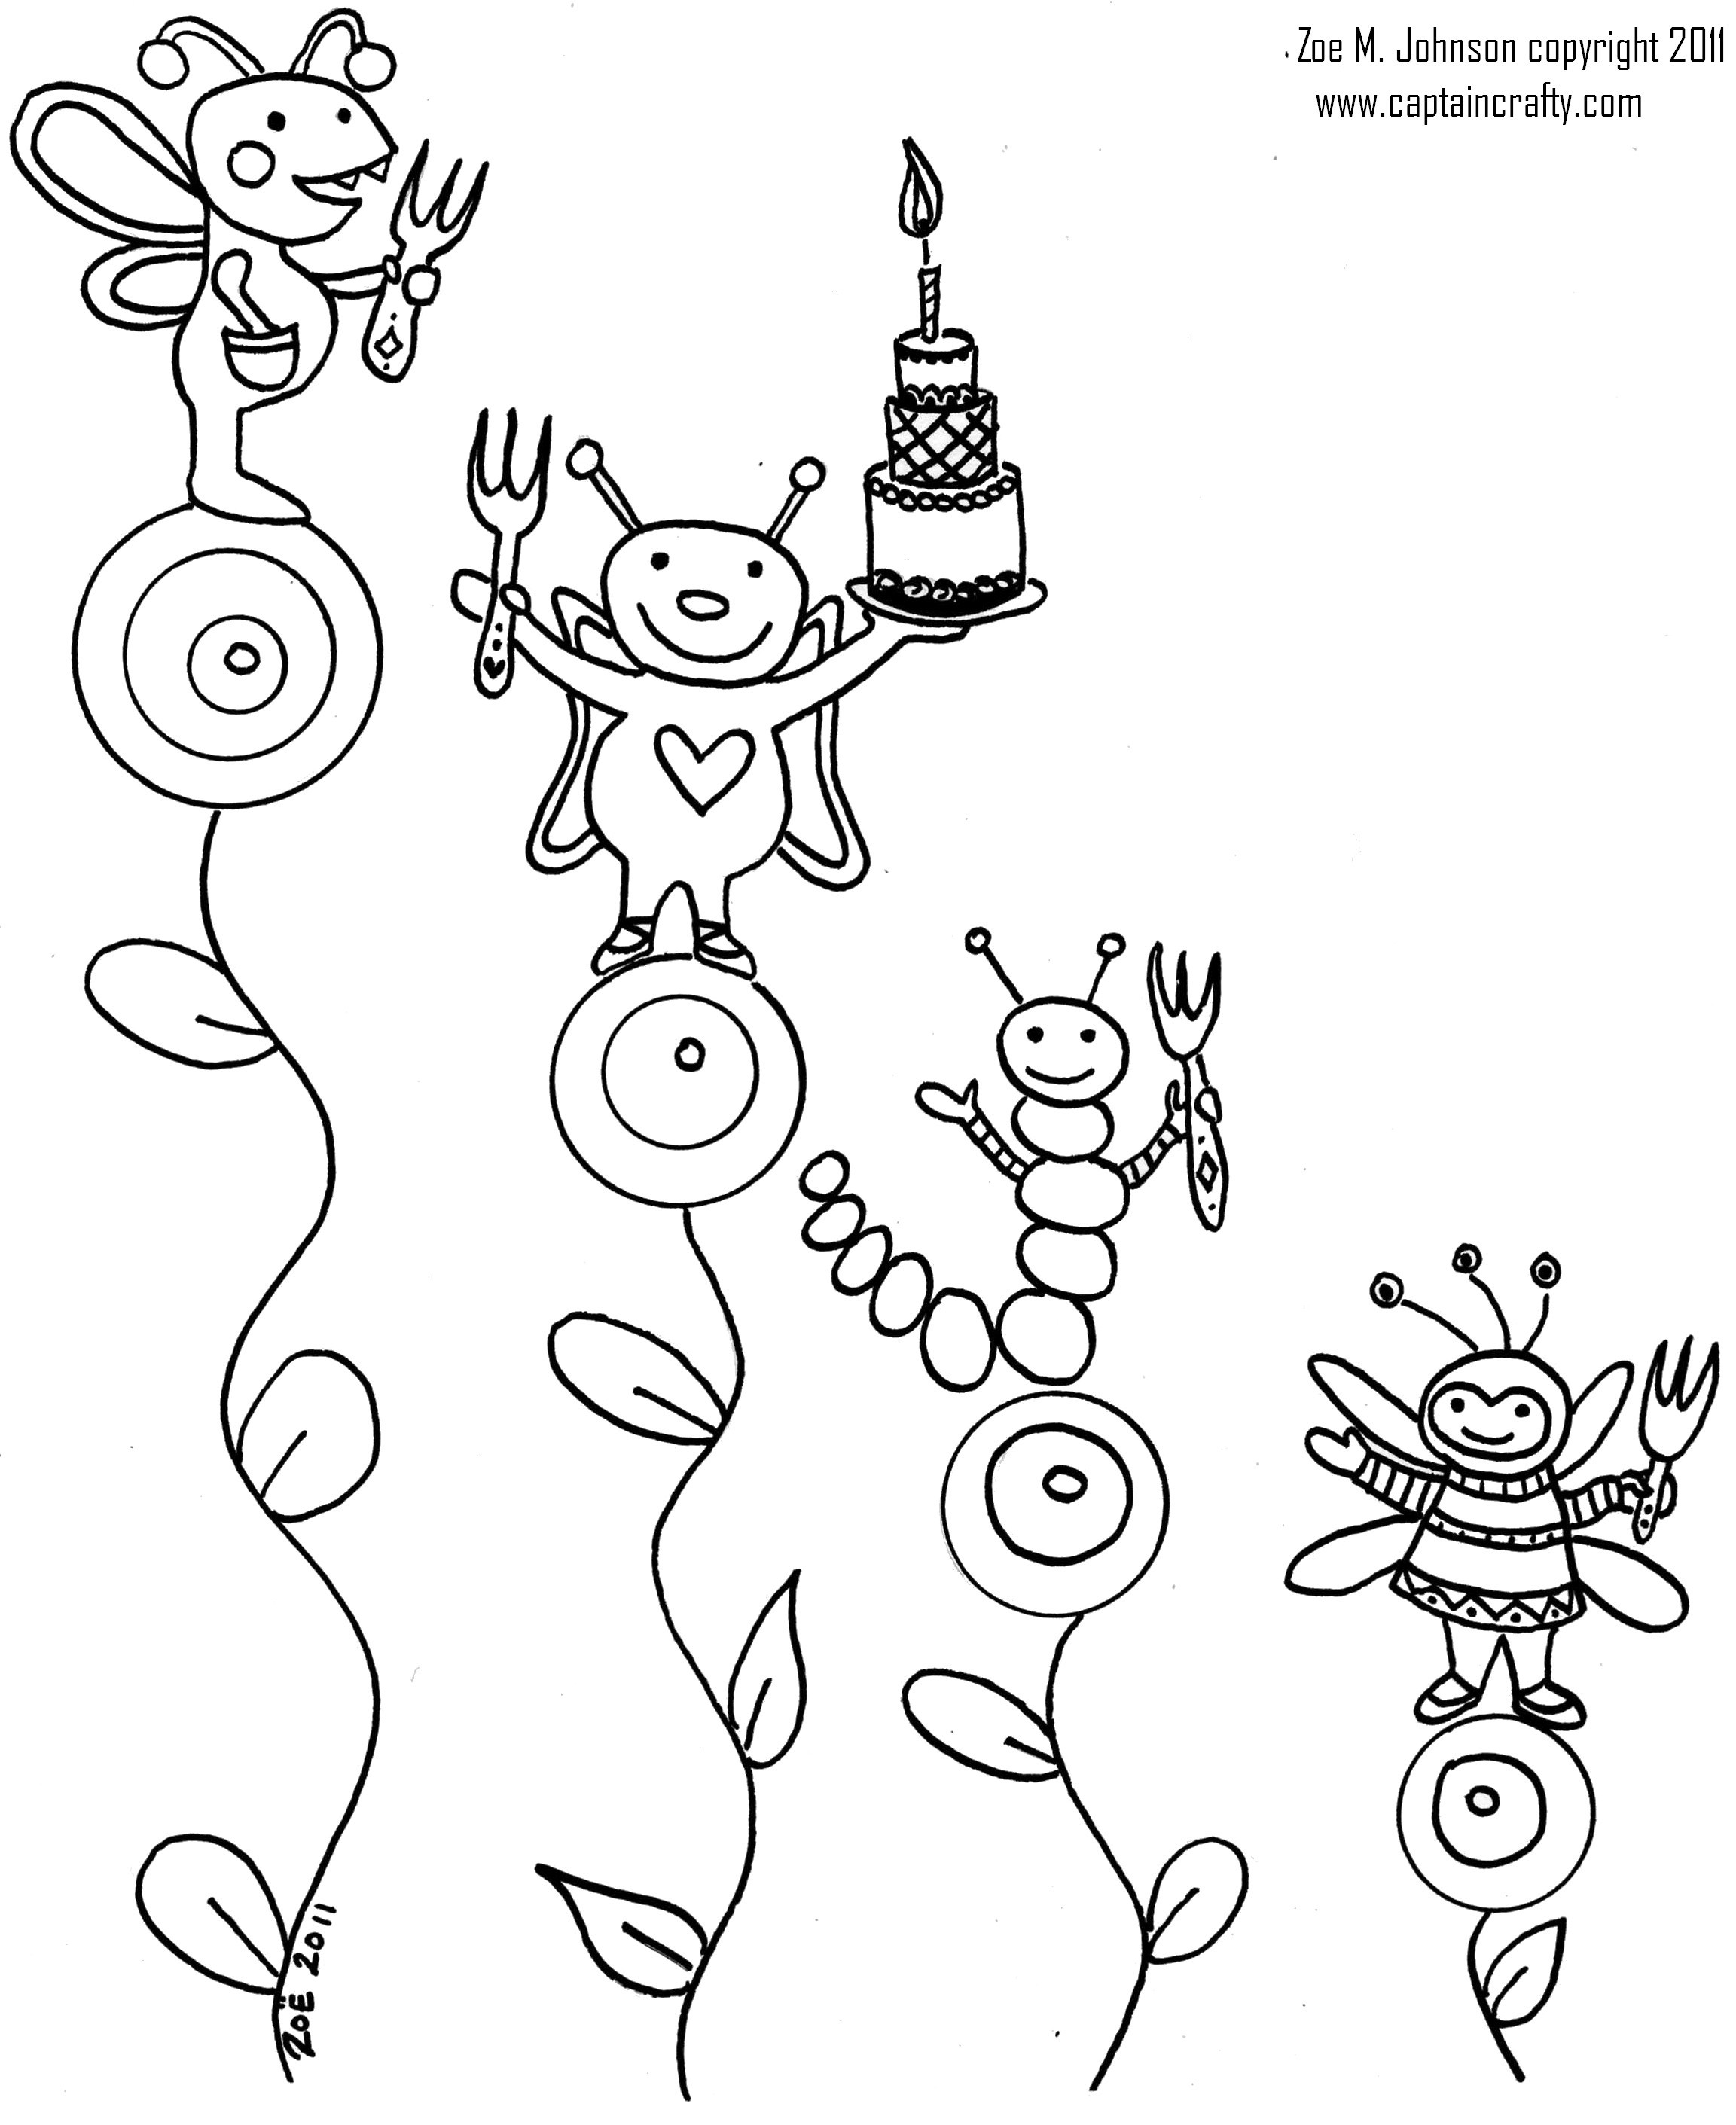 Vw Bug Coloring Pages At Getdrawings